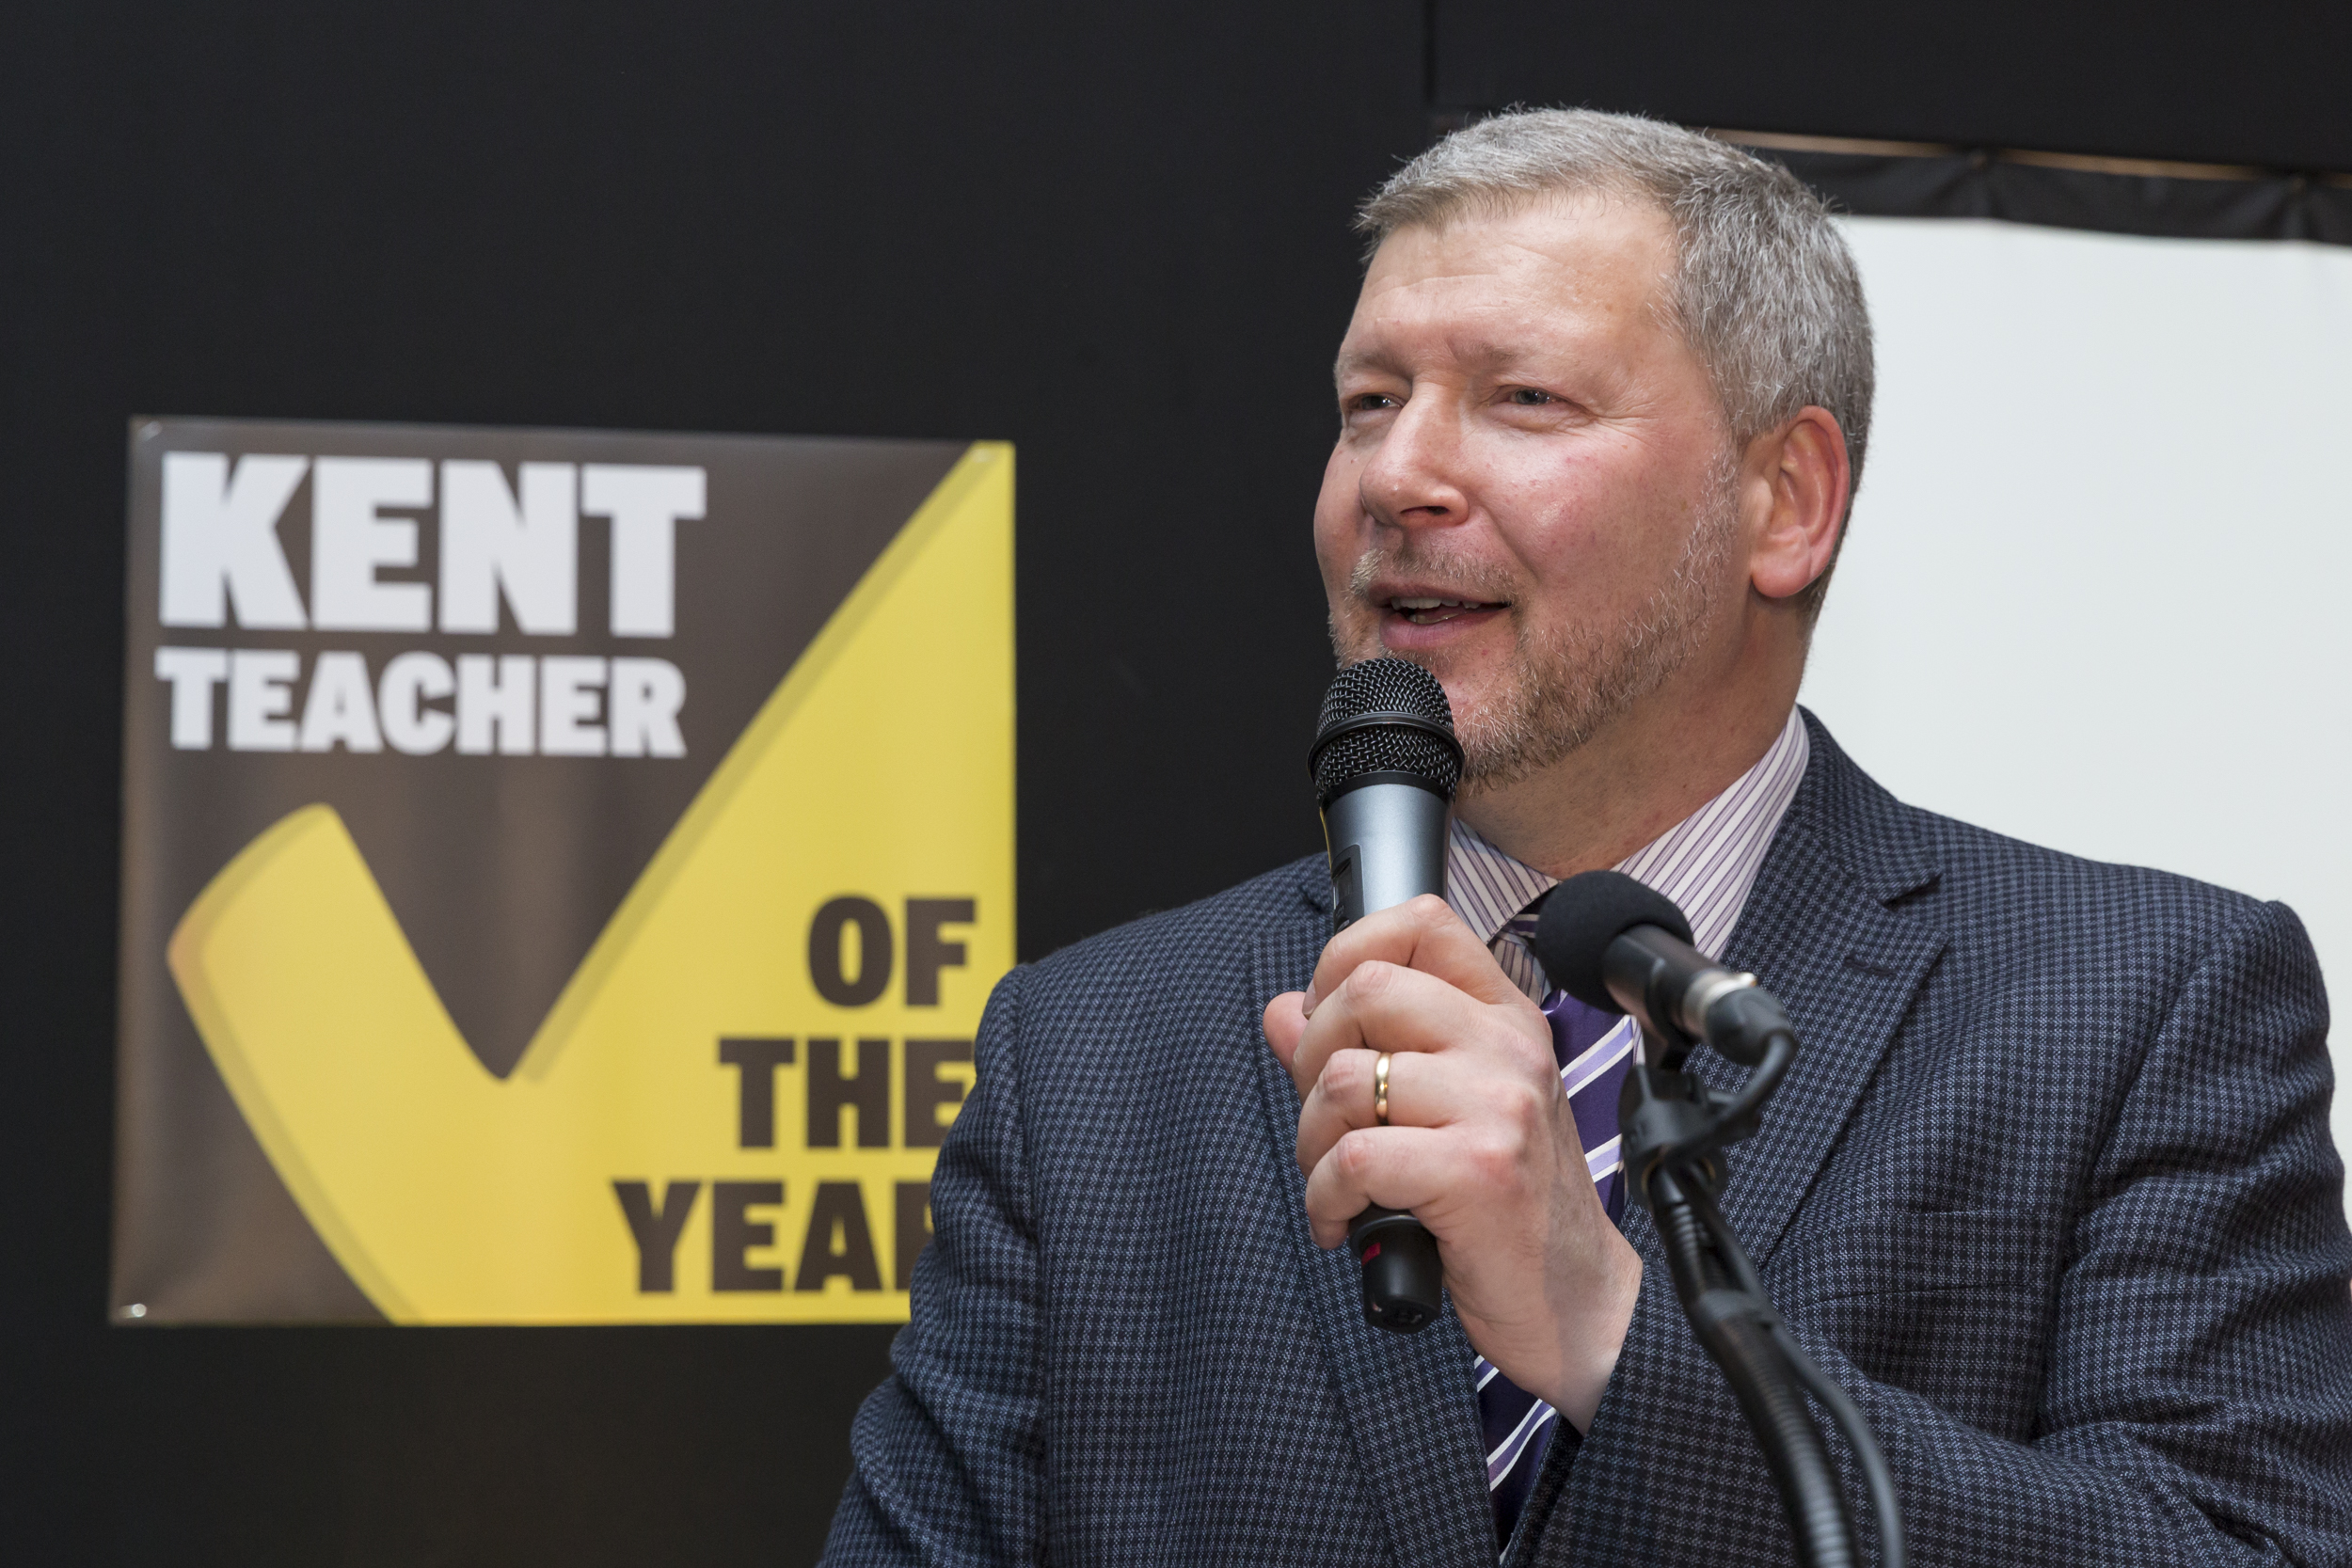 Kent Teacher of the Year 2018